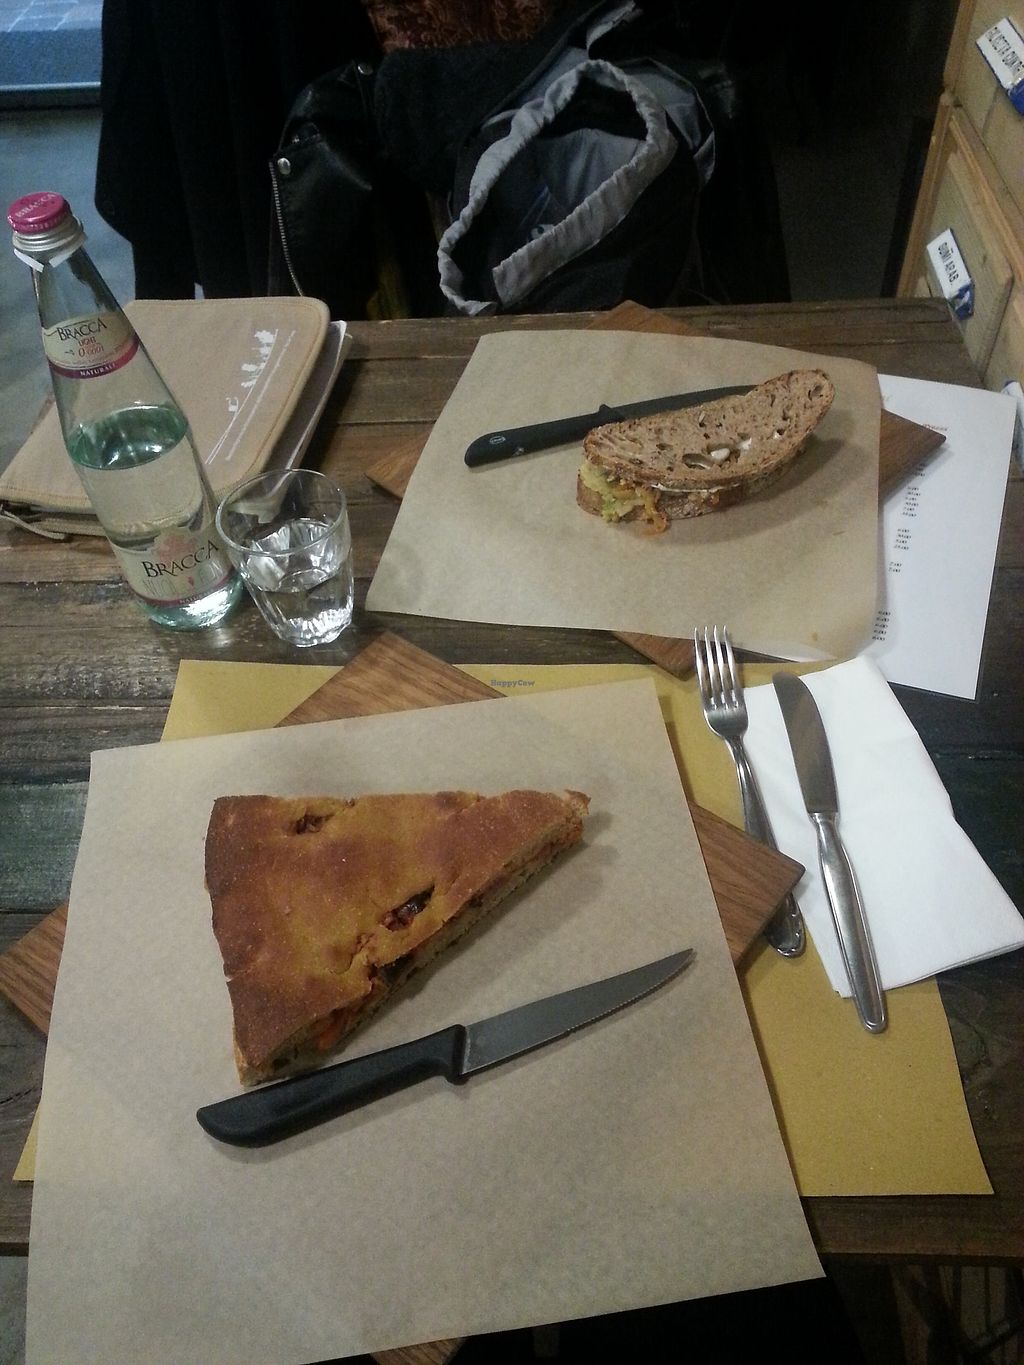 """Photo of Le Golose Imperfezioni  by <a href=""""/members/profile/ManueEmmaLeTllc"""">ManueEmmaLeTllc</a> <br/>Bread like a pizza and avocado sandwich <br/> August 9, 2017  - <a href='/contact/abuse/image/73779/290851'>Report</a>"""